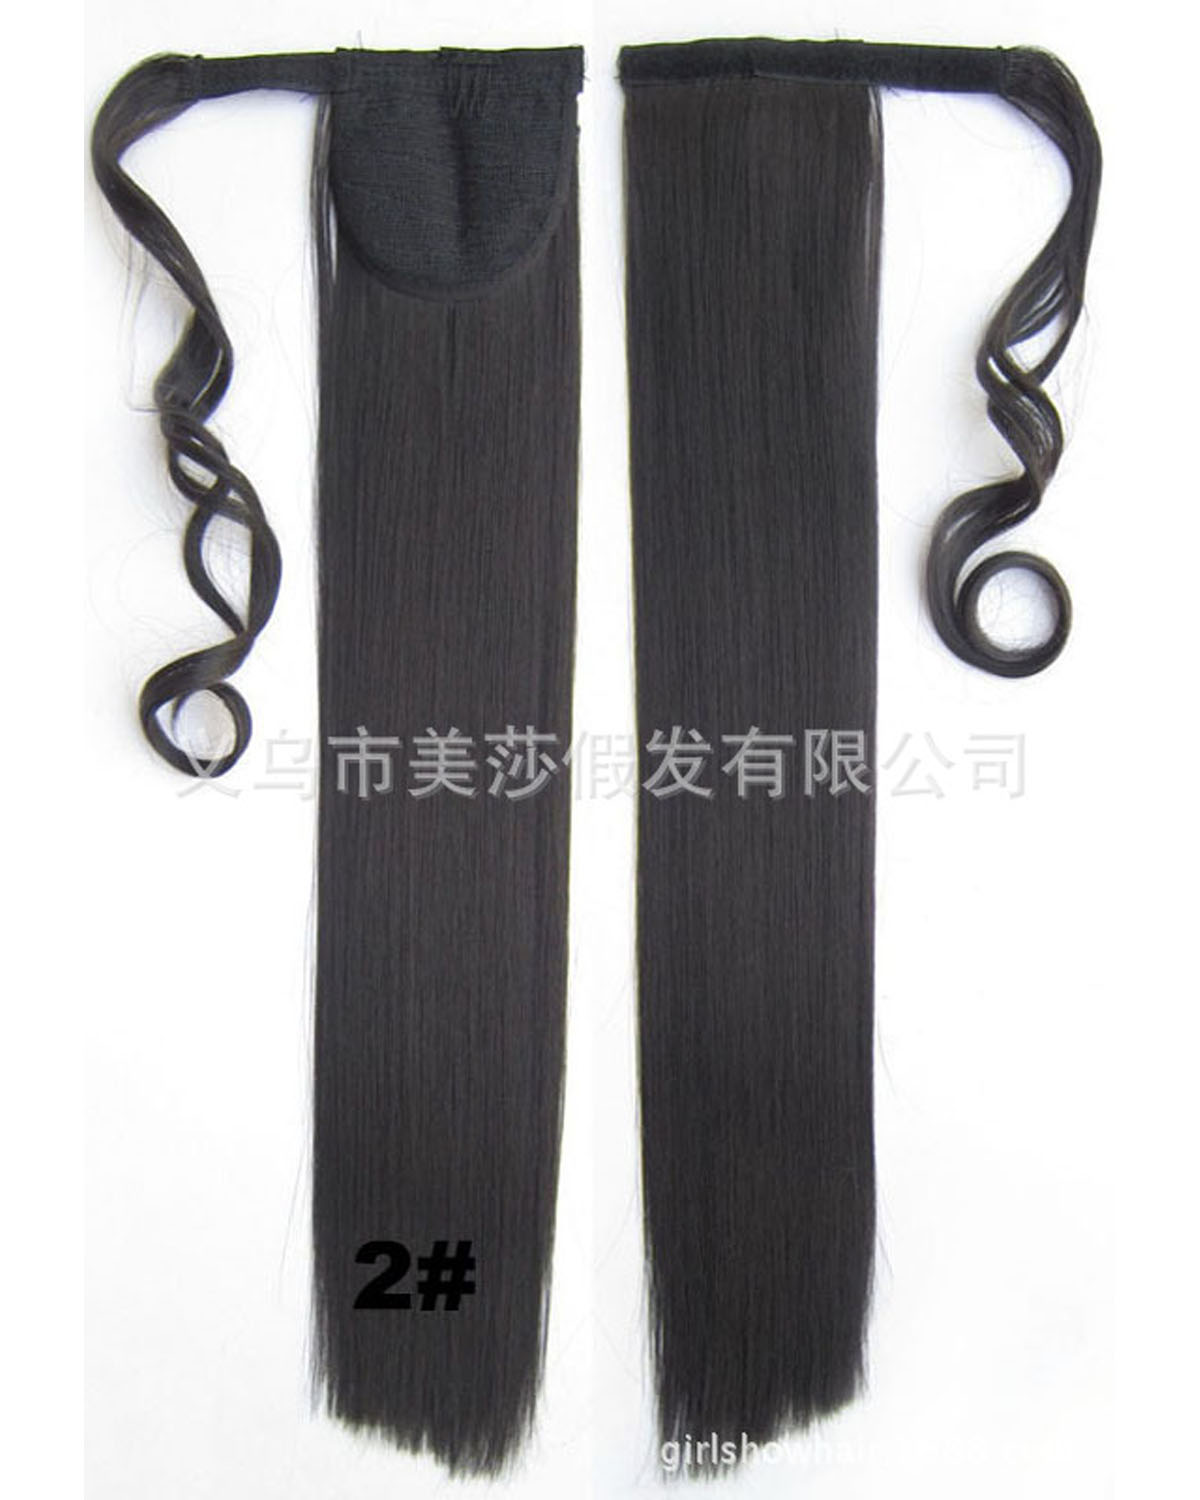 22 Inch Women Fancy Straight and Long Wrap Around Synthetic Hair Ponytail 2#